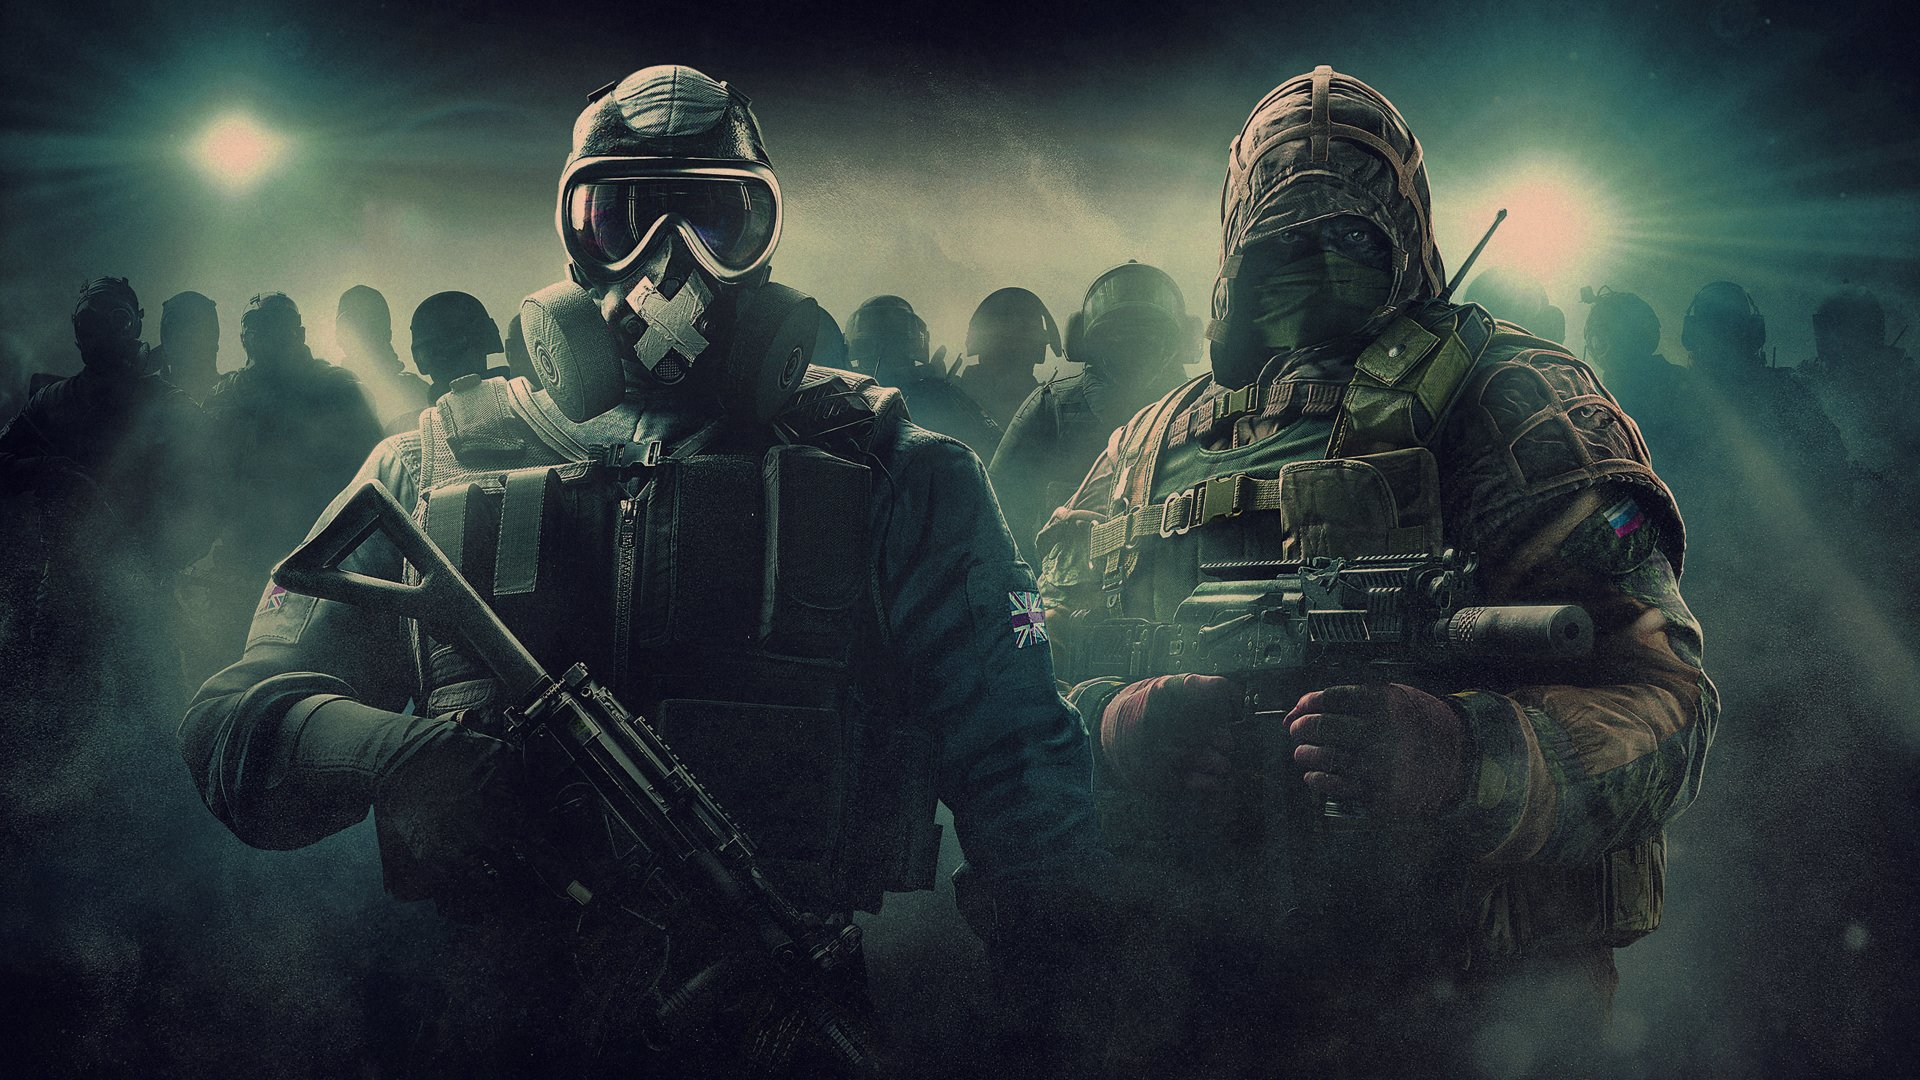 Video Game - Tom Clancy's Rainbow Six: Siege  Mute (Tom Clancy's Rainbow Six: Siege) Kapkan (Tom Clancy's Rainbow Six: Siege) Gas Mask Wallpaper